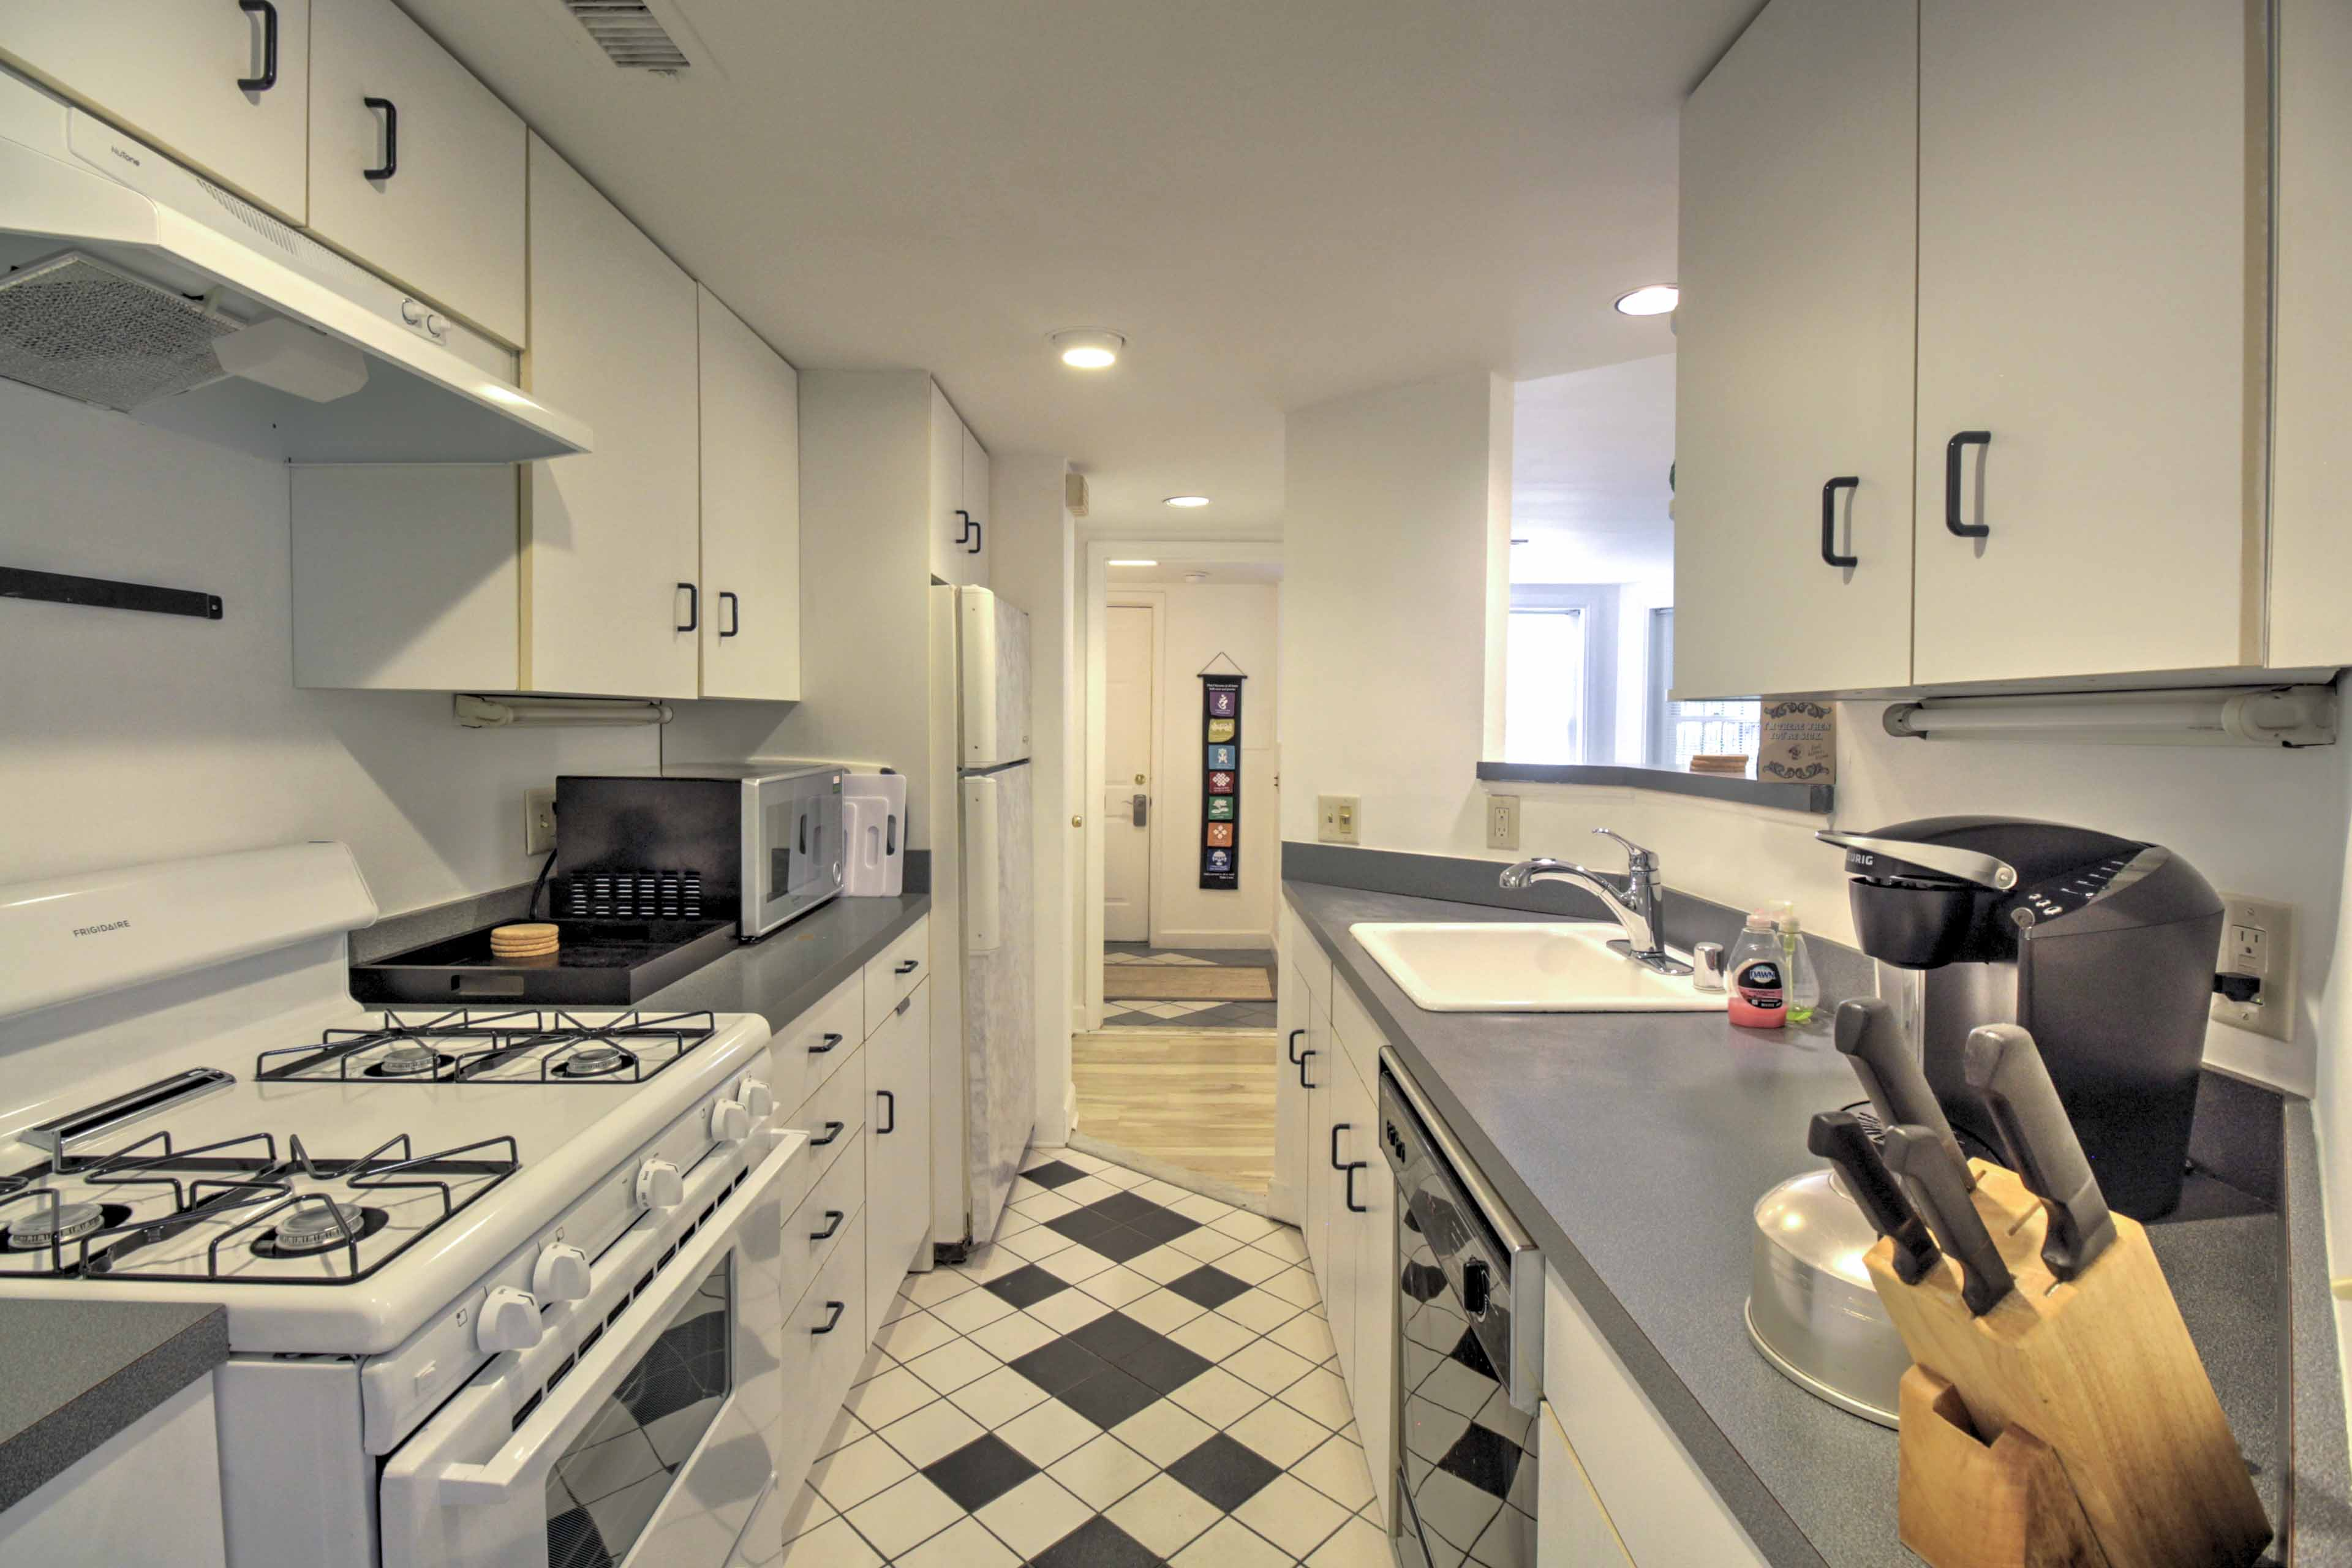 A fully equipped kitchen will make cooking at home a breeze during your stay.